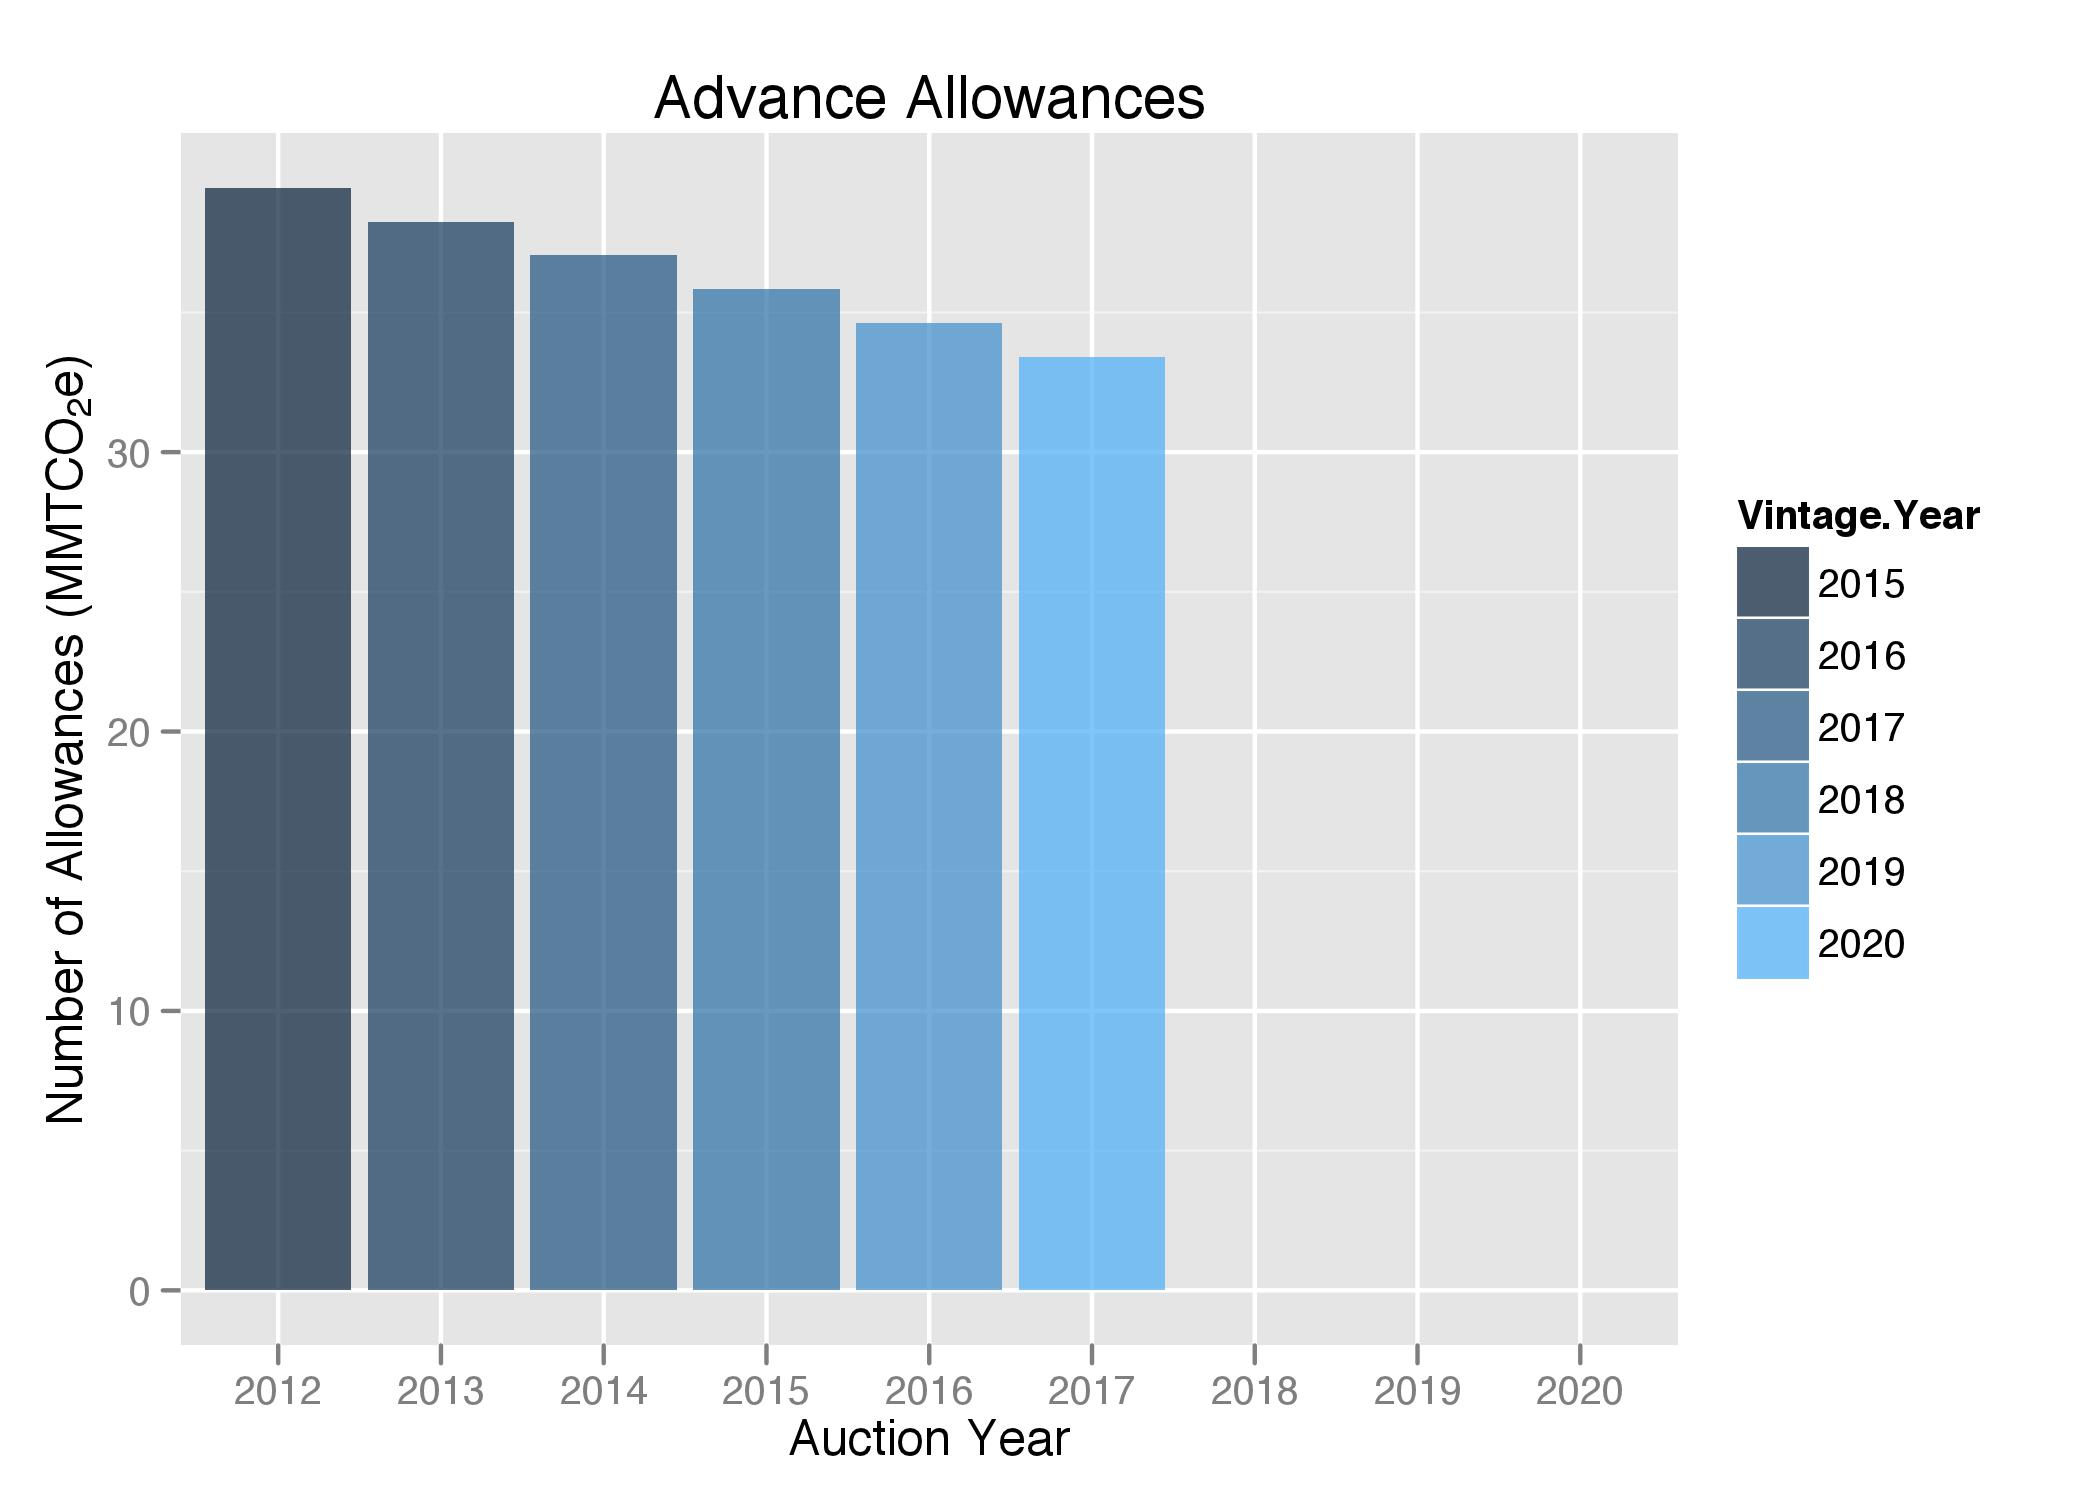 Advance allowances by auction year and vintage